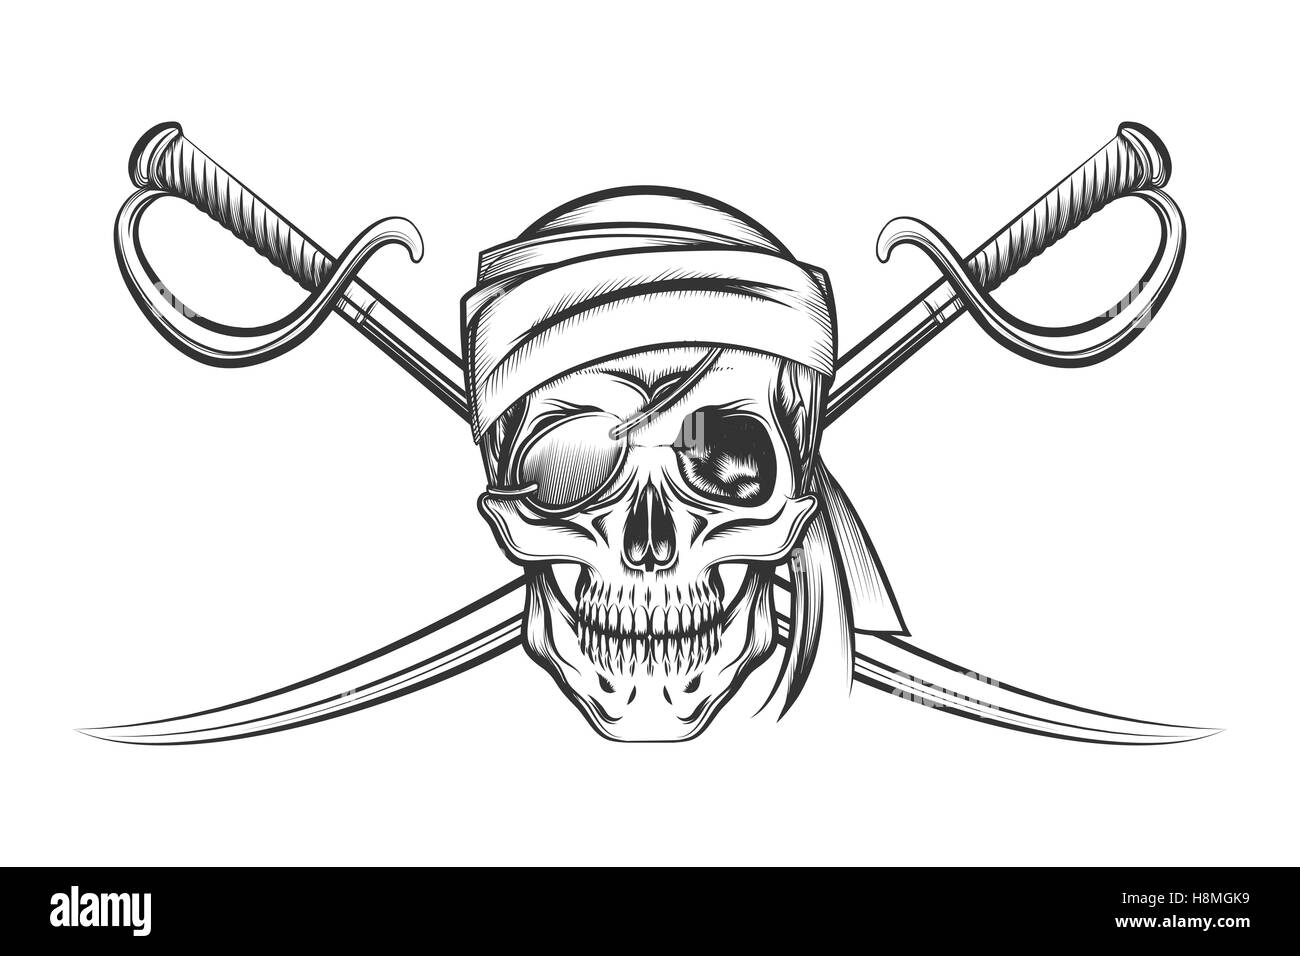 pirate symbol of a skull in the captain u0027s hat and two crossed